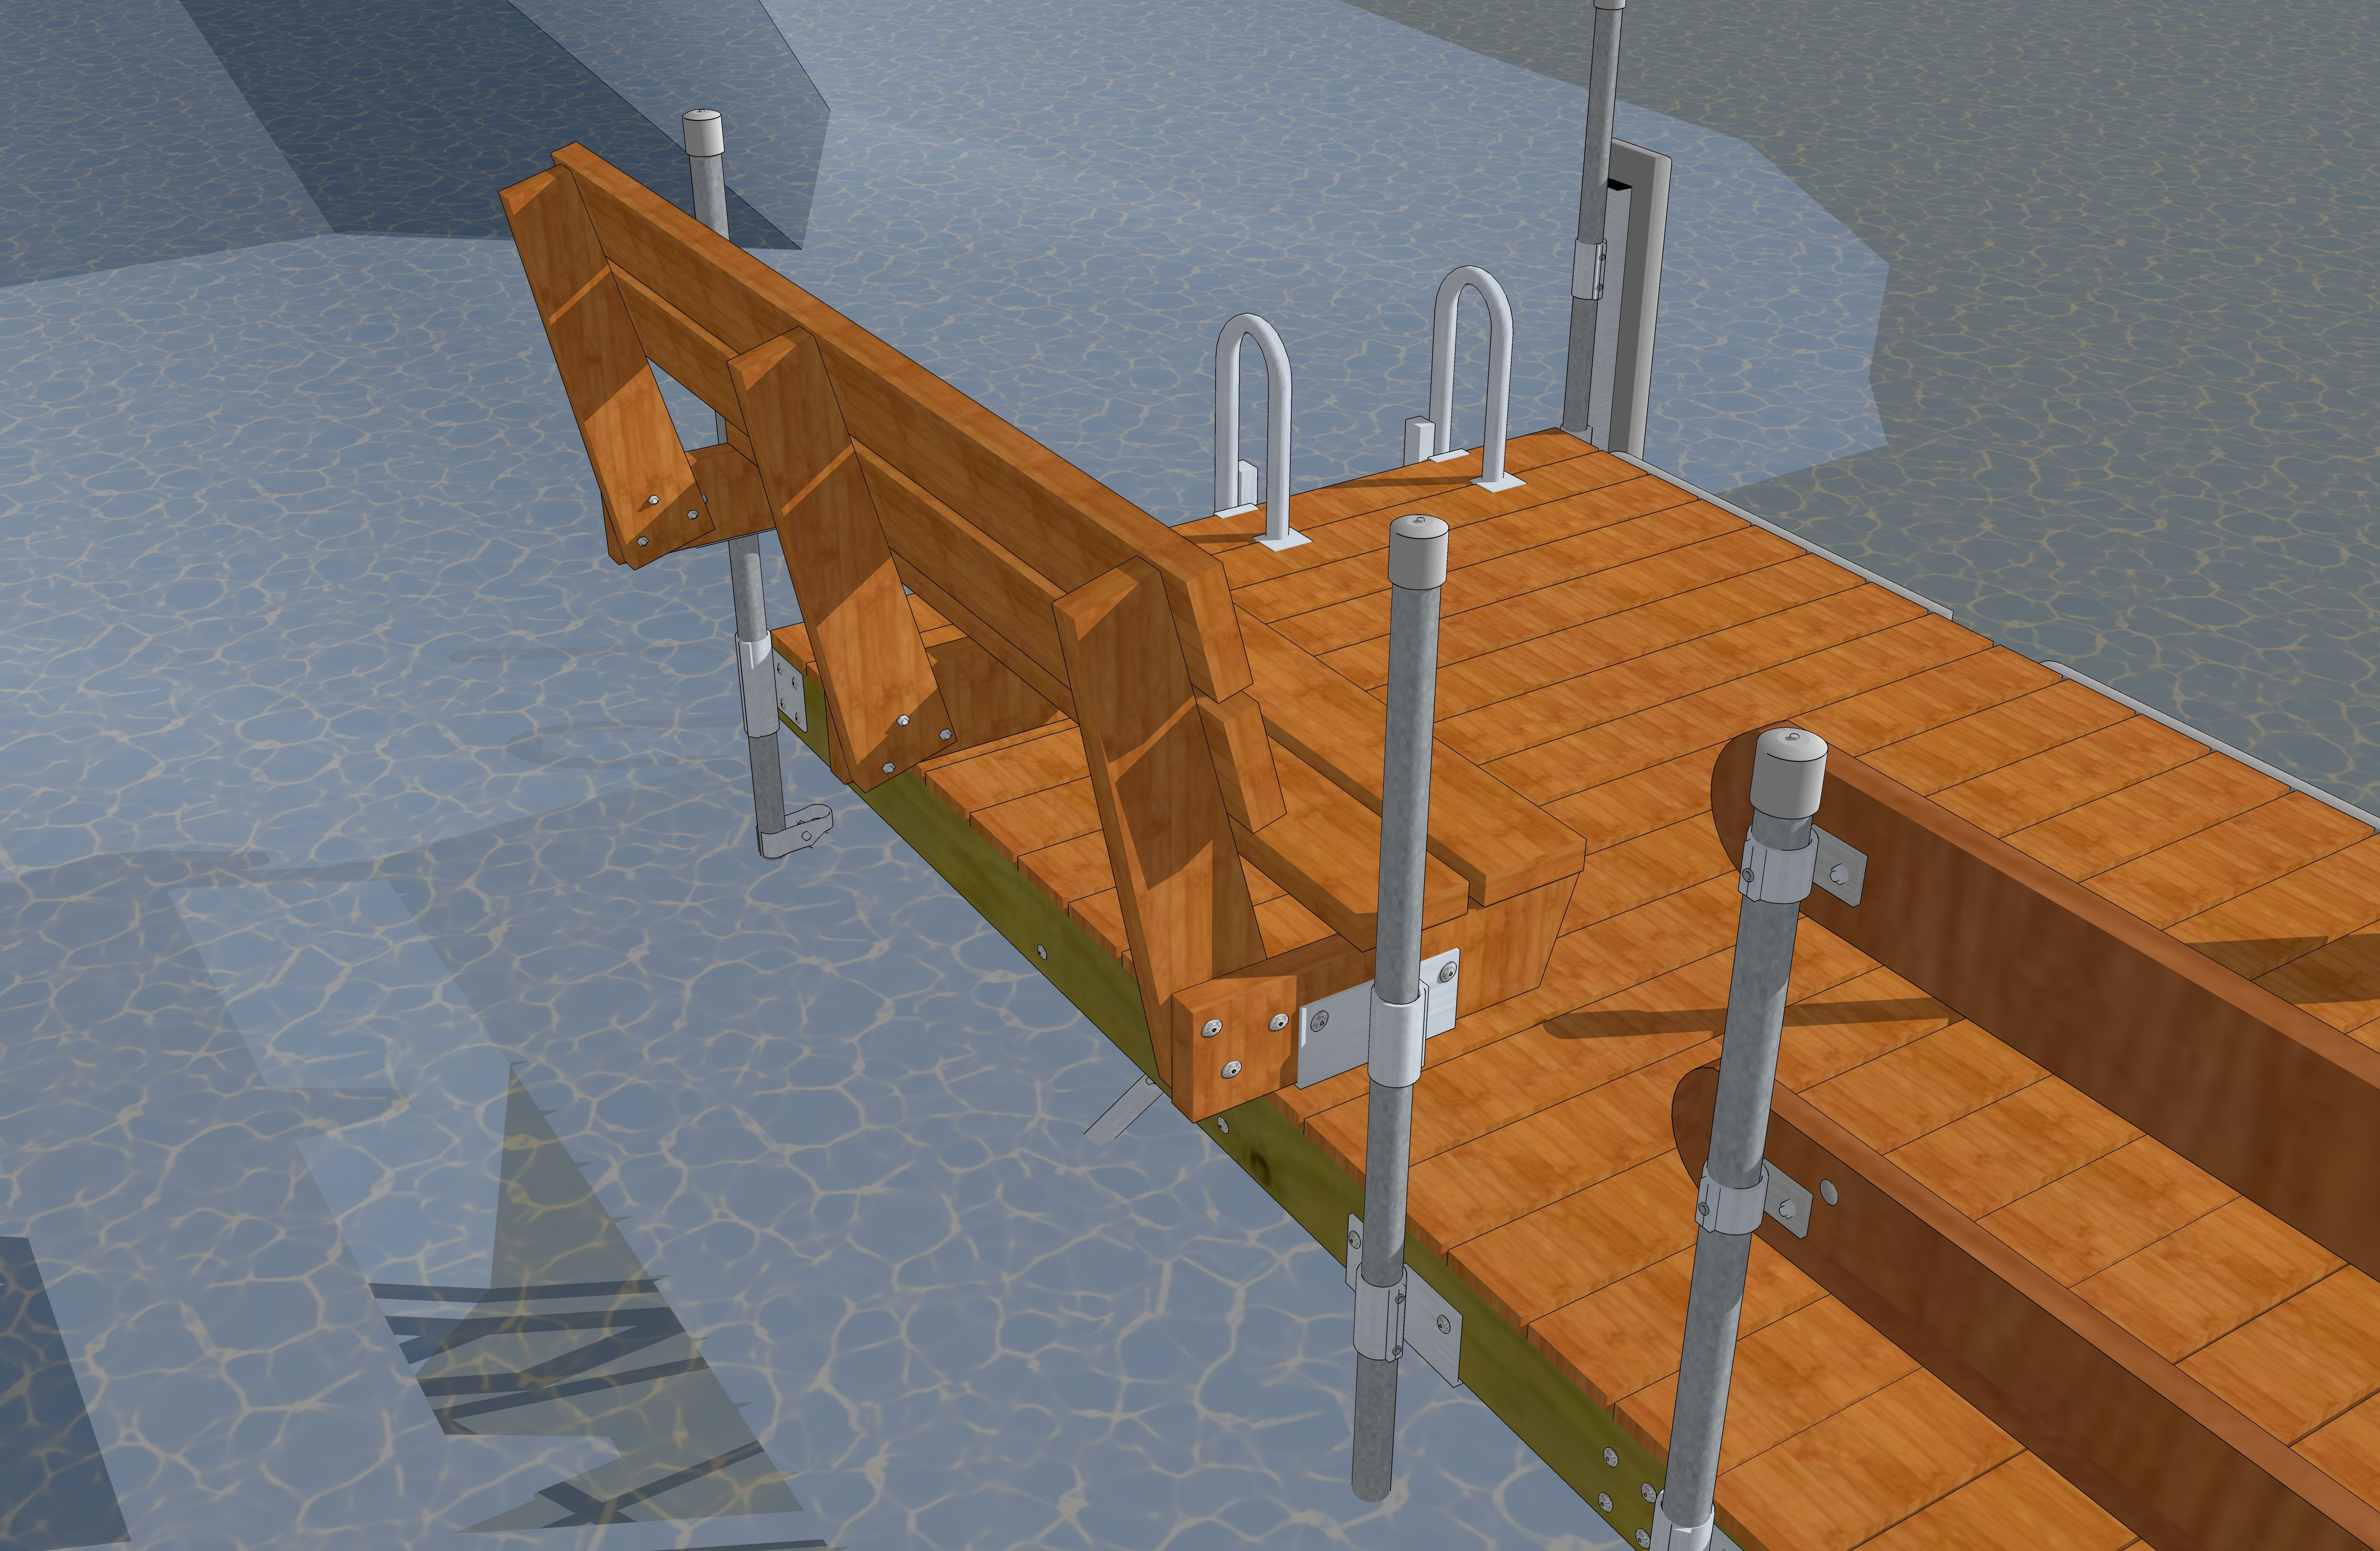 GND-Catalog - Boat Docks | Houseboats | Boat dock, Boat